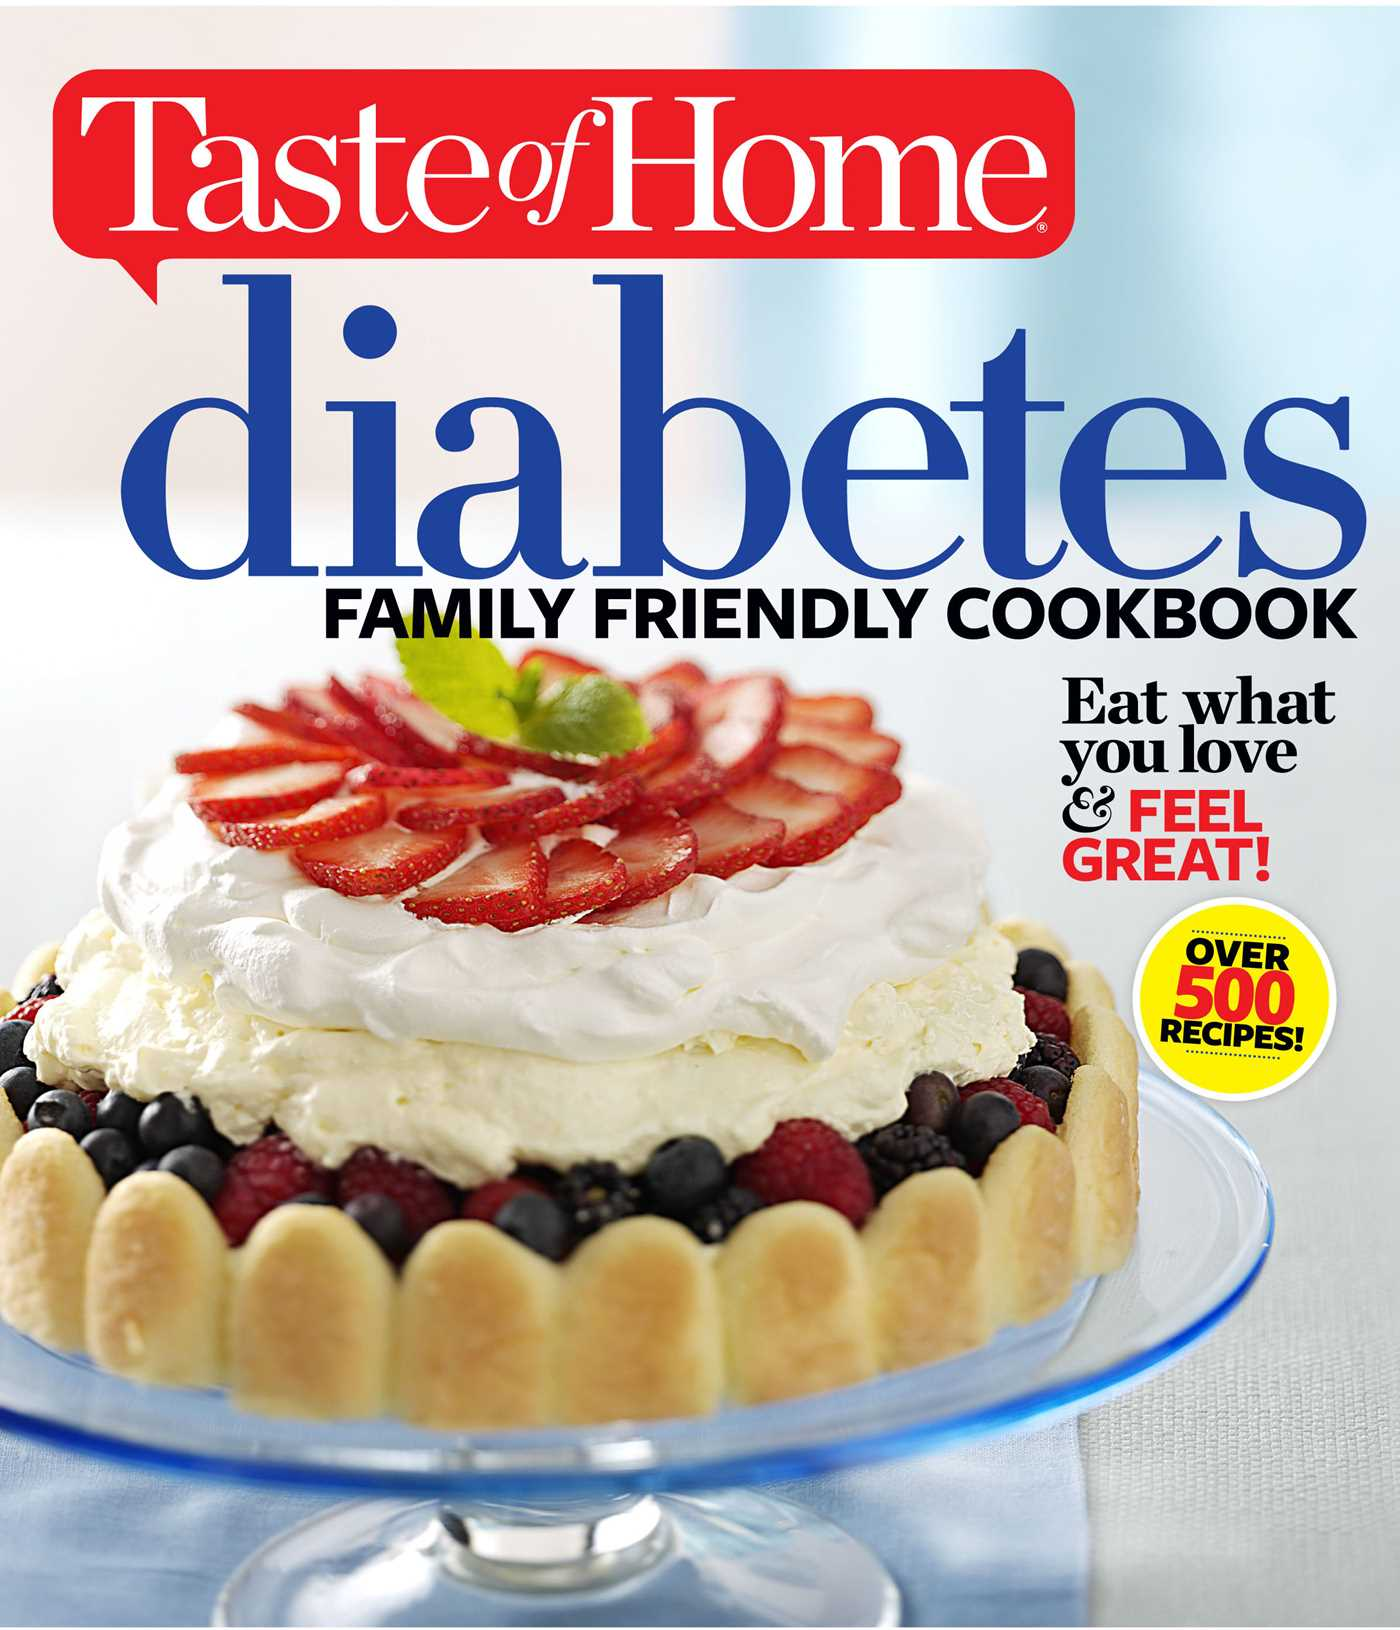 Taste-of-home-diabetes-family-friendly-cookbook-9781617652677_hr